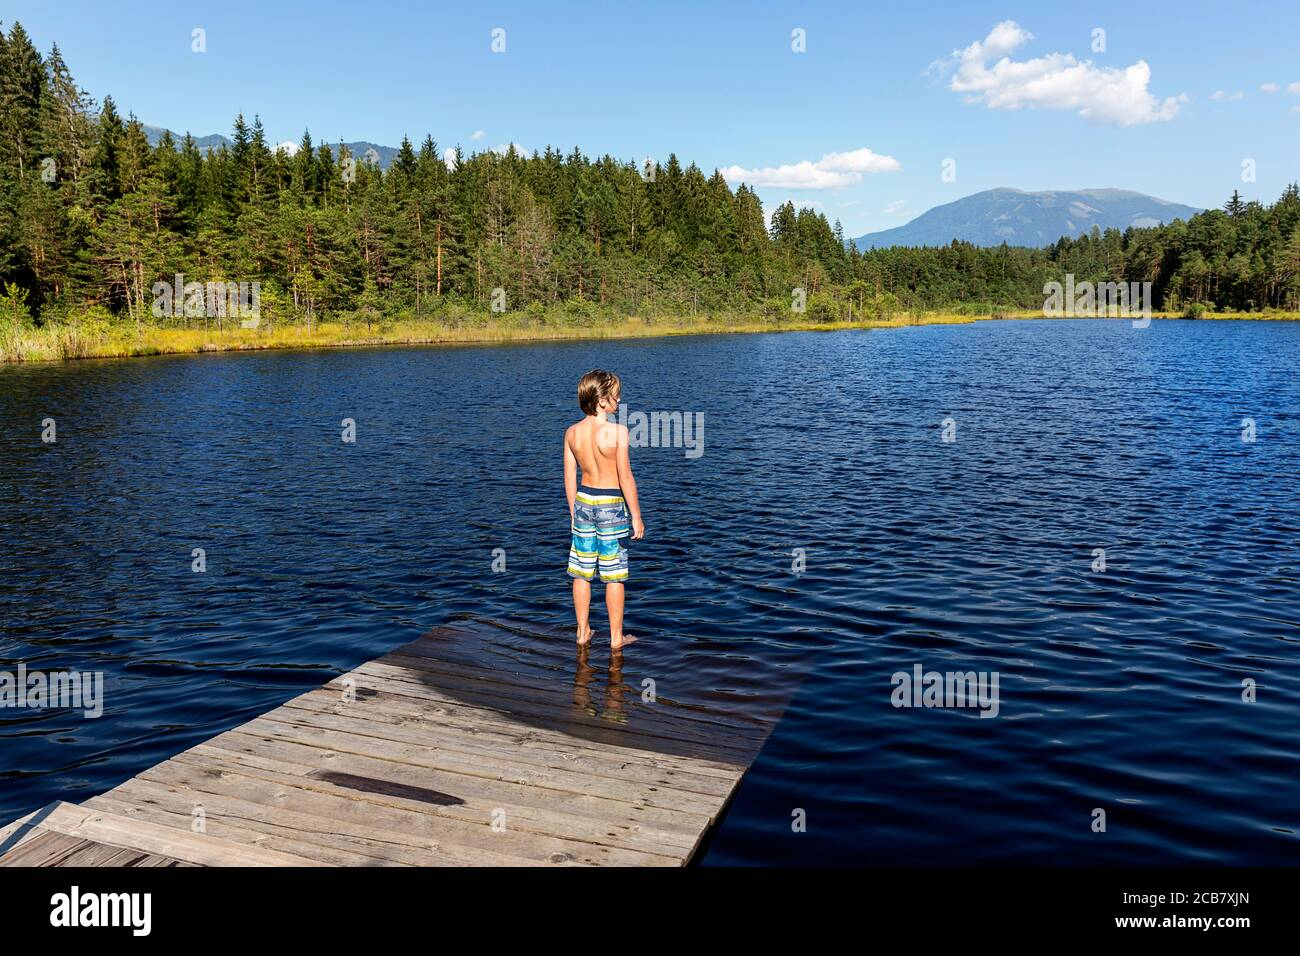 Boy standing on wooden pier in shallow water on lake Egelsee, Austria, Oberösterreich, Upper Austria Stock Photo